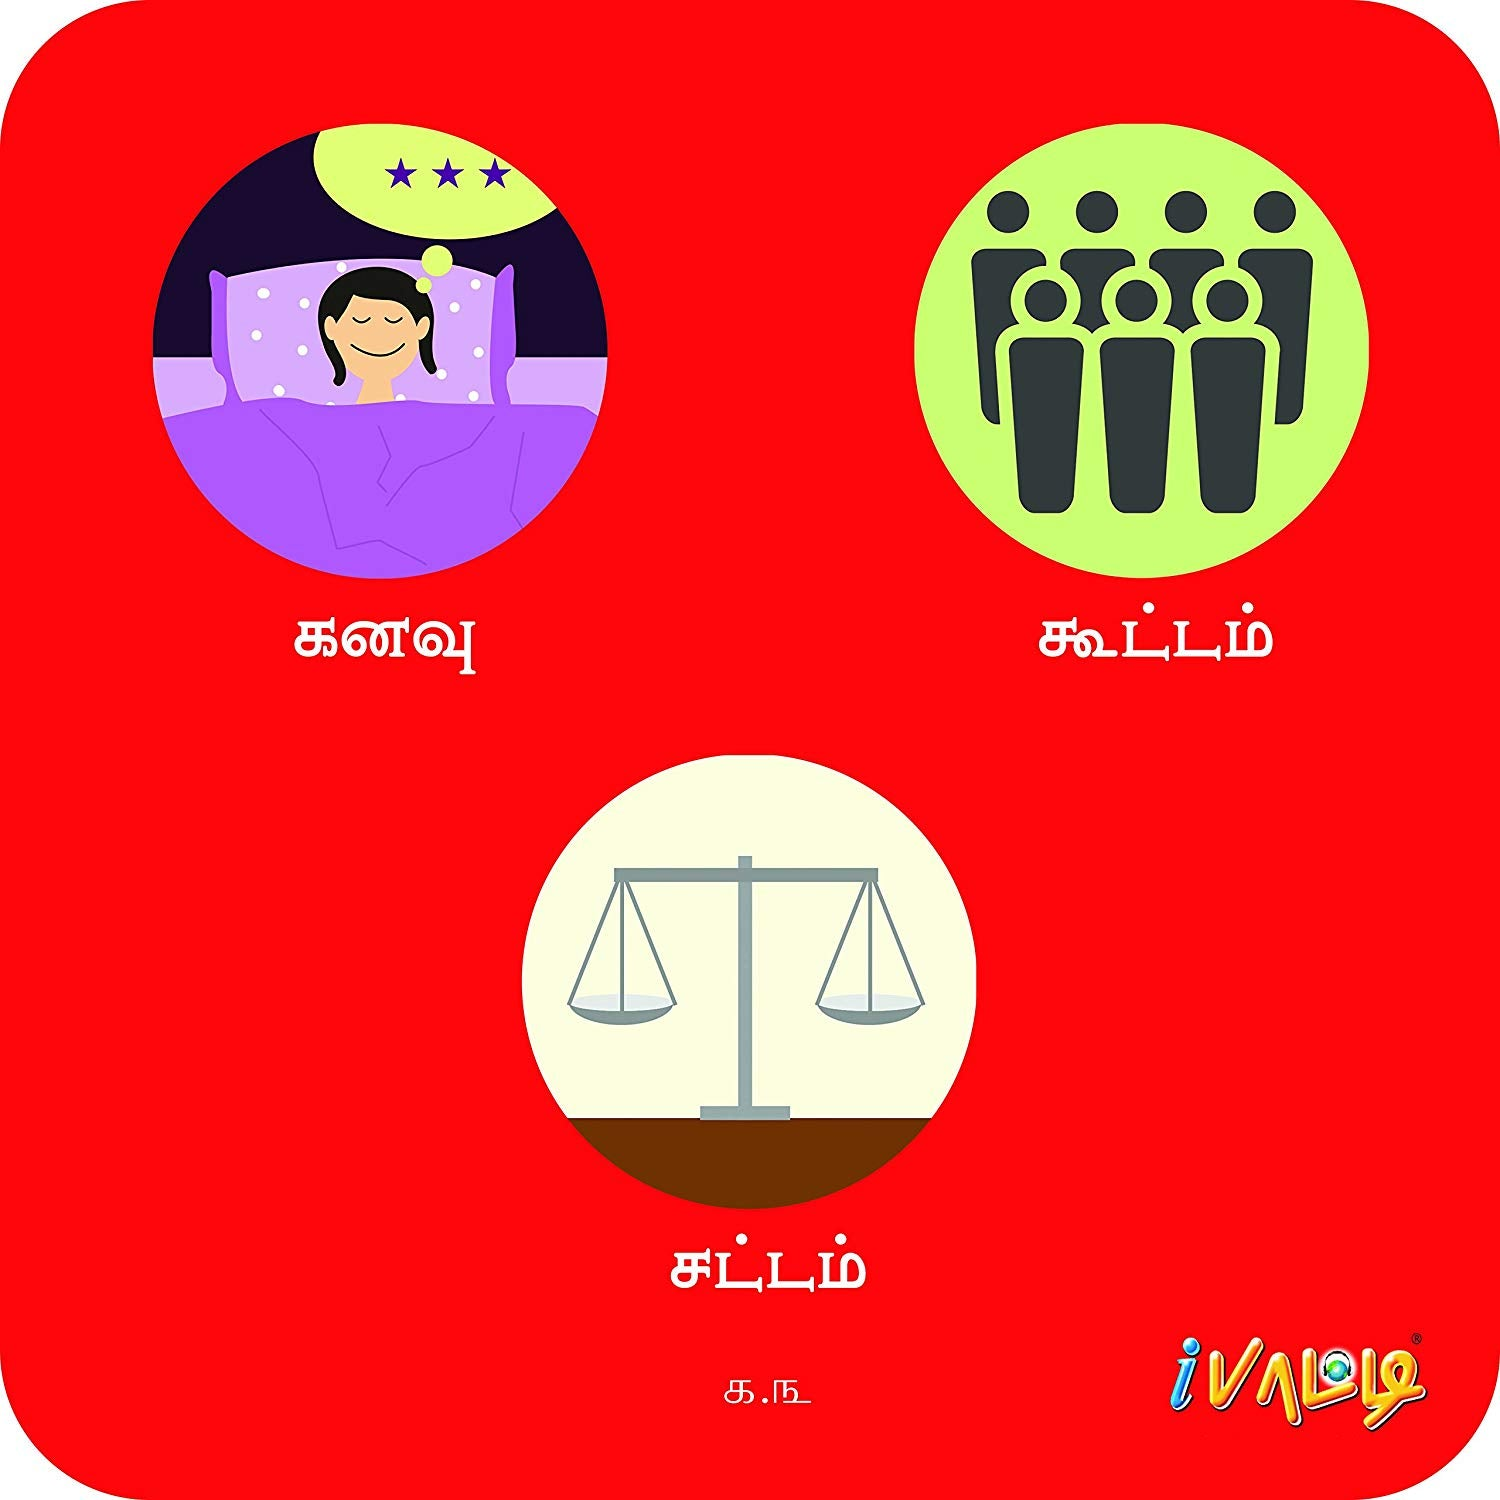 மின்னல் | Find hidden Tamil words